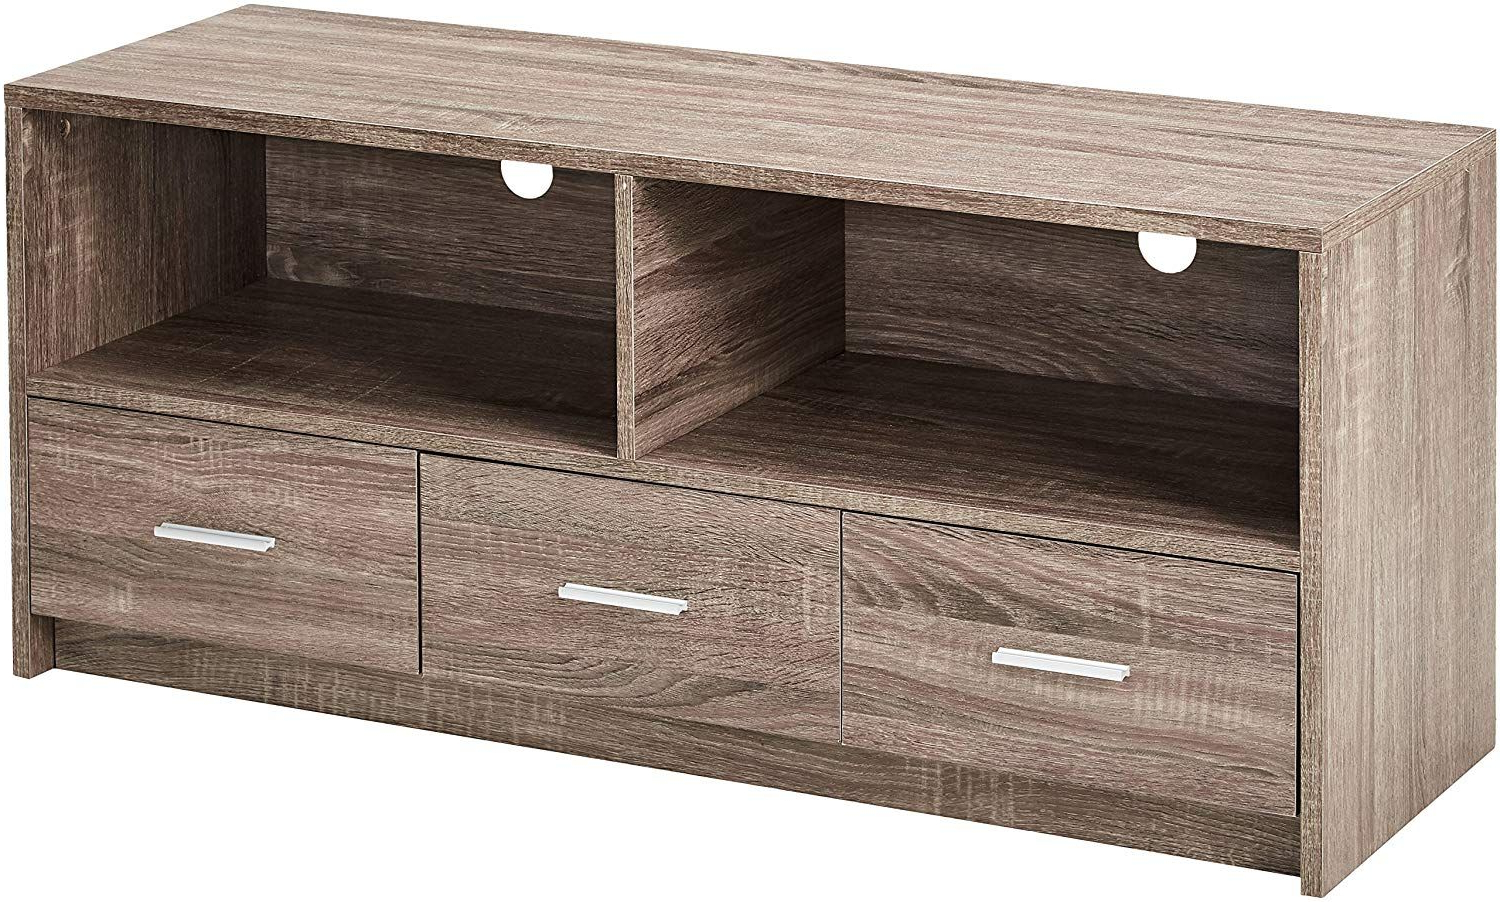 Kings Brand Furniture Wood Tv Stand, Grey | Tv Stand Wood For Covent Tv Stands (View 3 of 16)